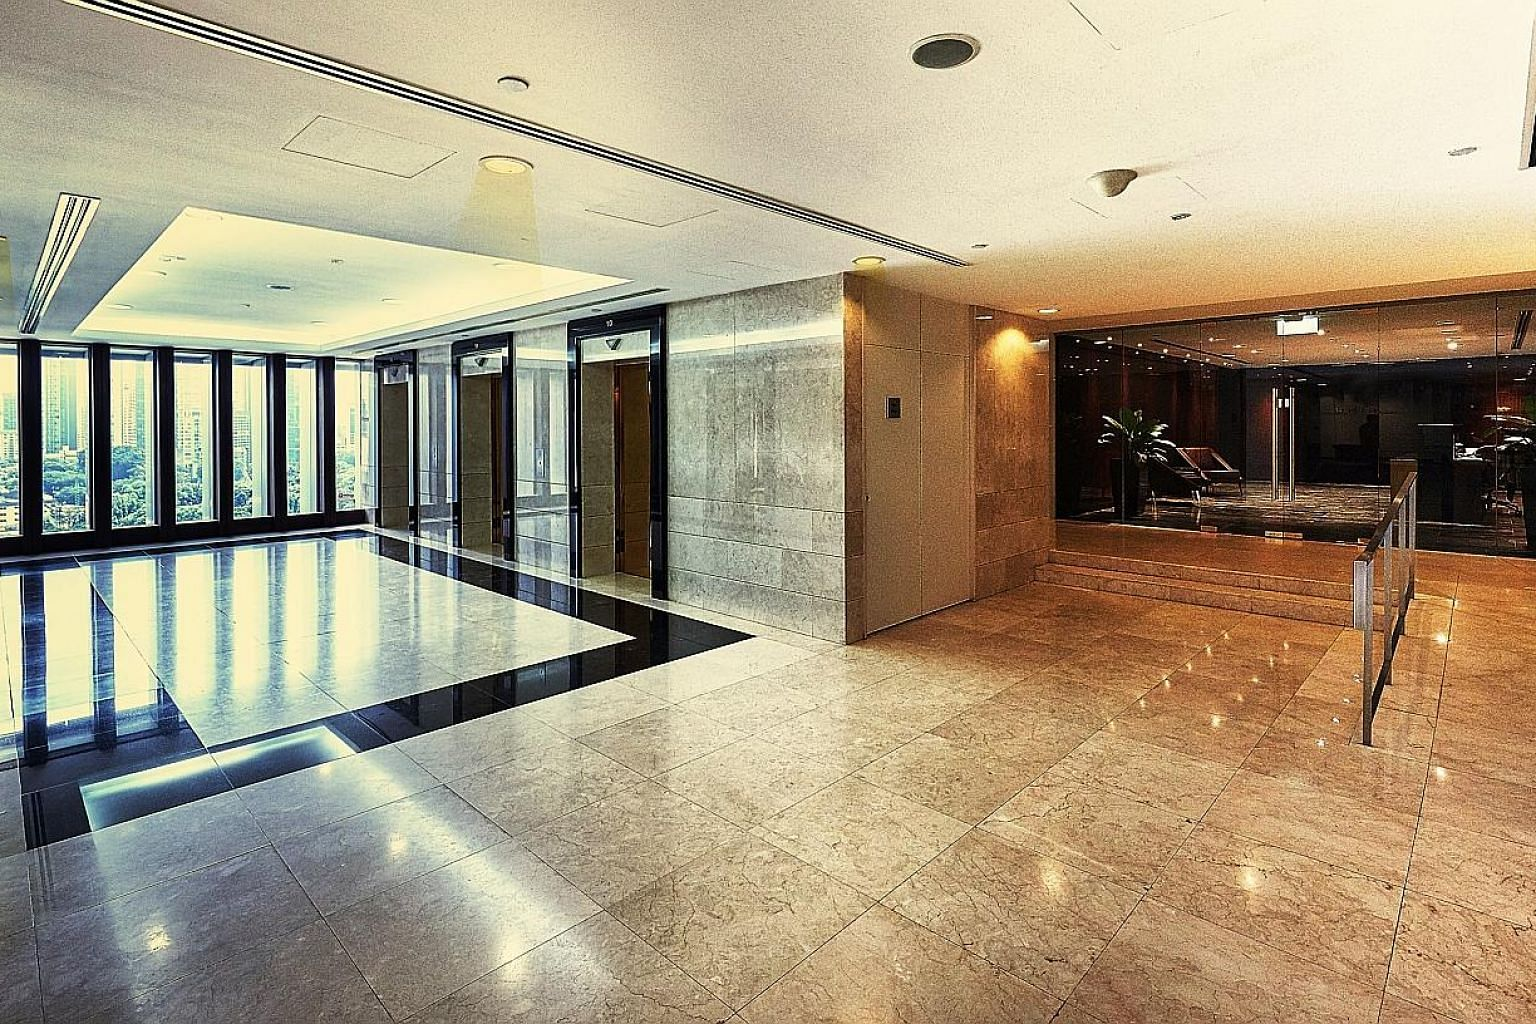 This 17th-floor office space at Somerset Tower generates a yield of 3.5 per cent per year, said marketing agent CBRE. Capital markets director Sammi Lim said the agent expects to receive strong offers in excess of $31.4 million, or $2,980 per sq ft,